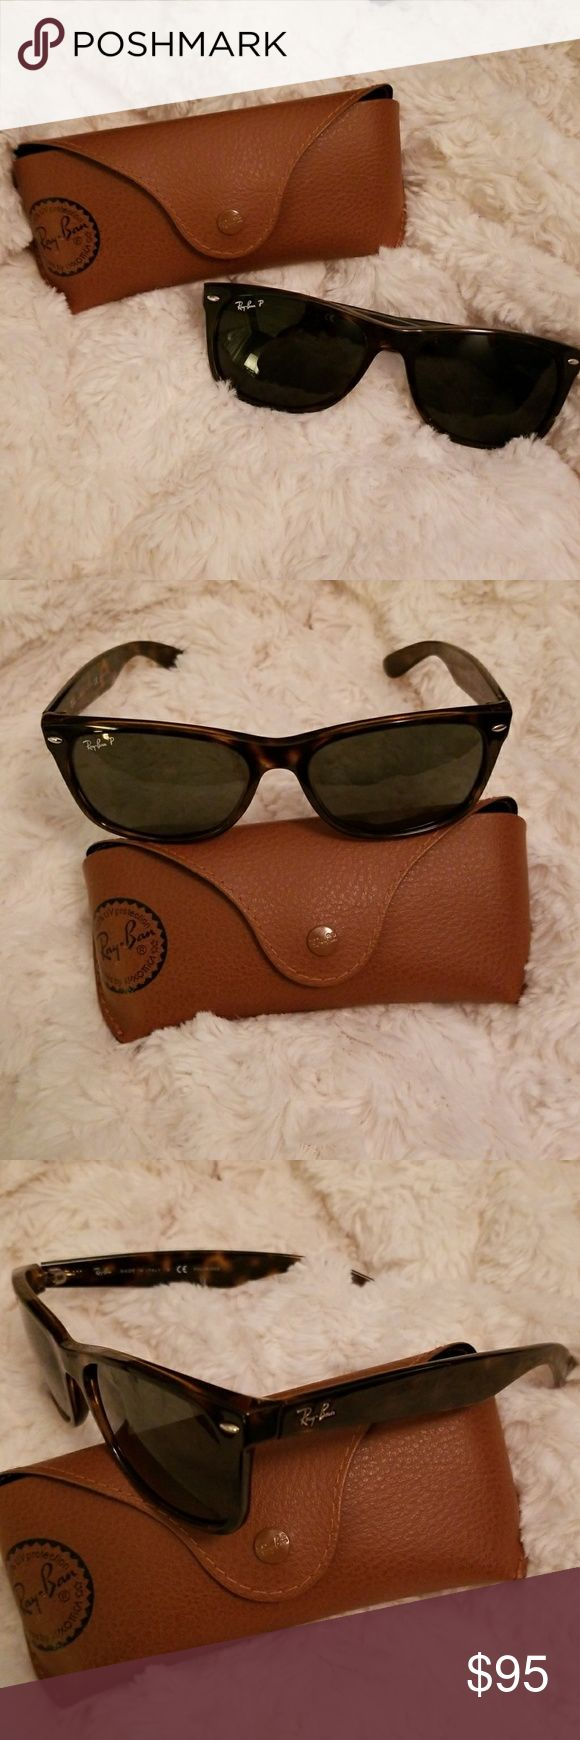 Ray-Ban New Wayfarer Sunglasses Classic tortoise colored authentic Ray-Ban sunglasses. Brand new. Comes with original case and cloth. Price negotiable. Ray-Ban Accessories Sunglasses